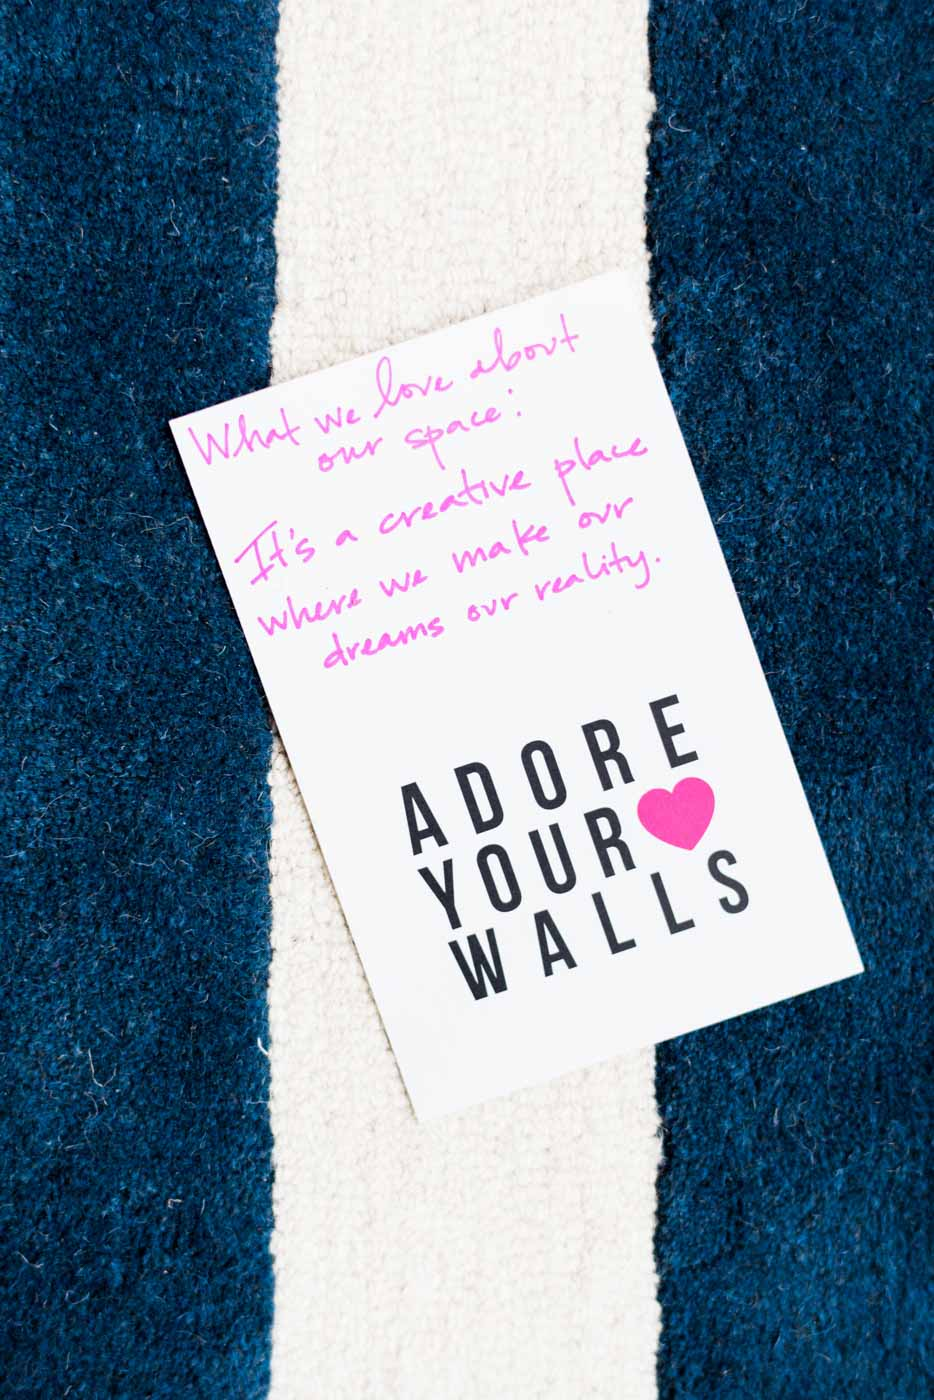 Studio Tour: Adore Your Walls | Design*Sponge